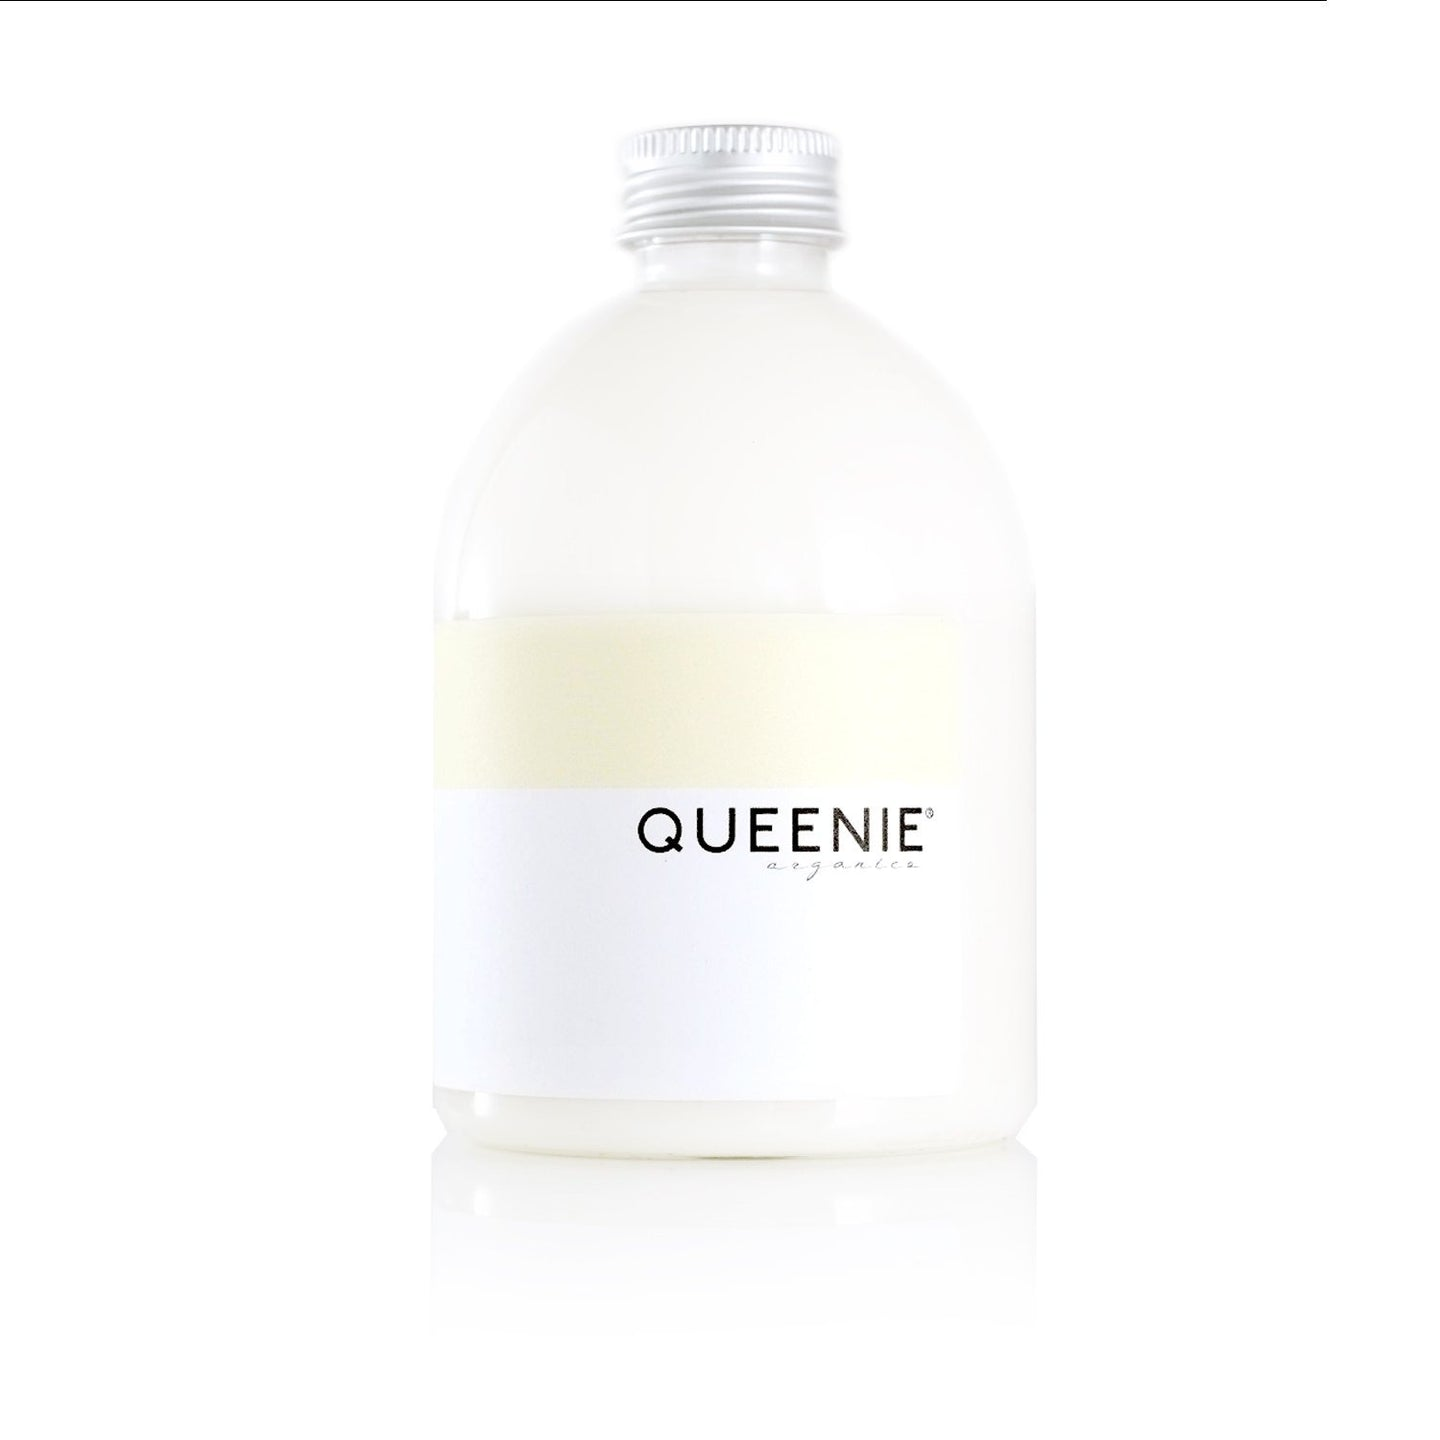 LEMON AND BERGAMOT HAND & BODY CREAM REFILL beauty from Queenie Organics curated by pu·rist